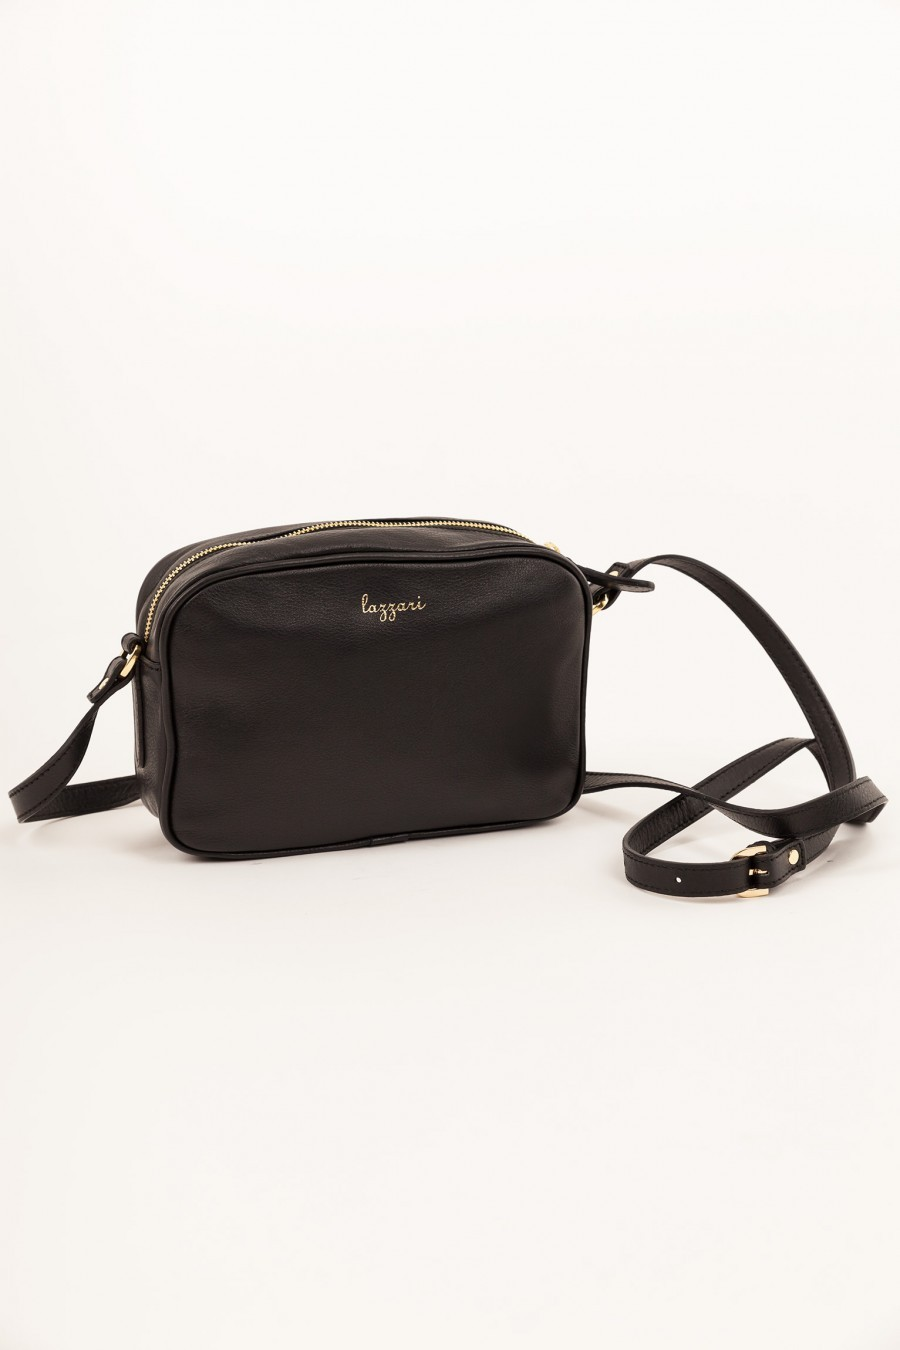 Shoulder bag Lazzari